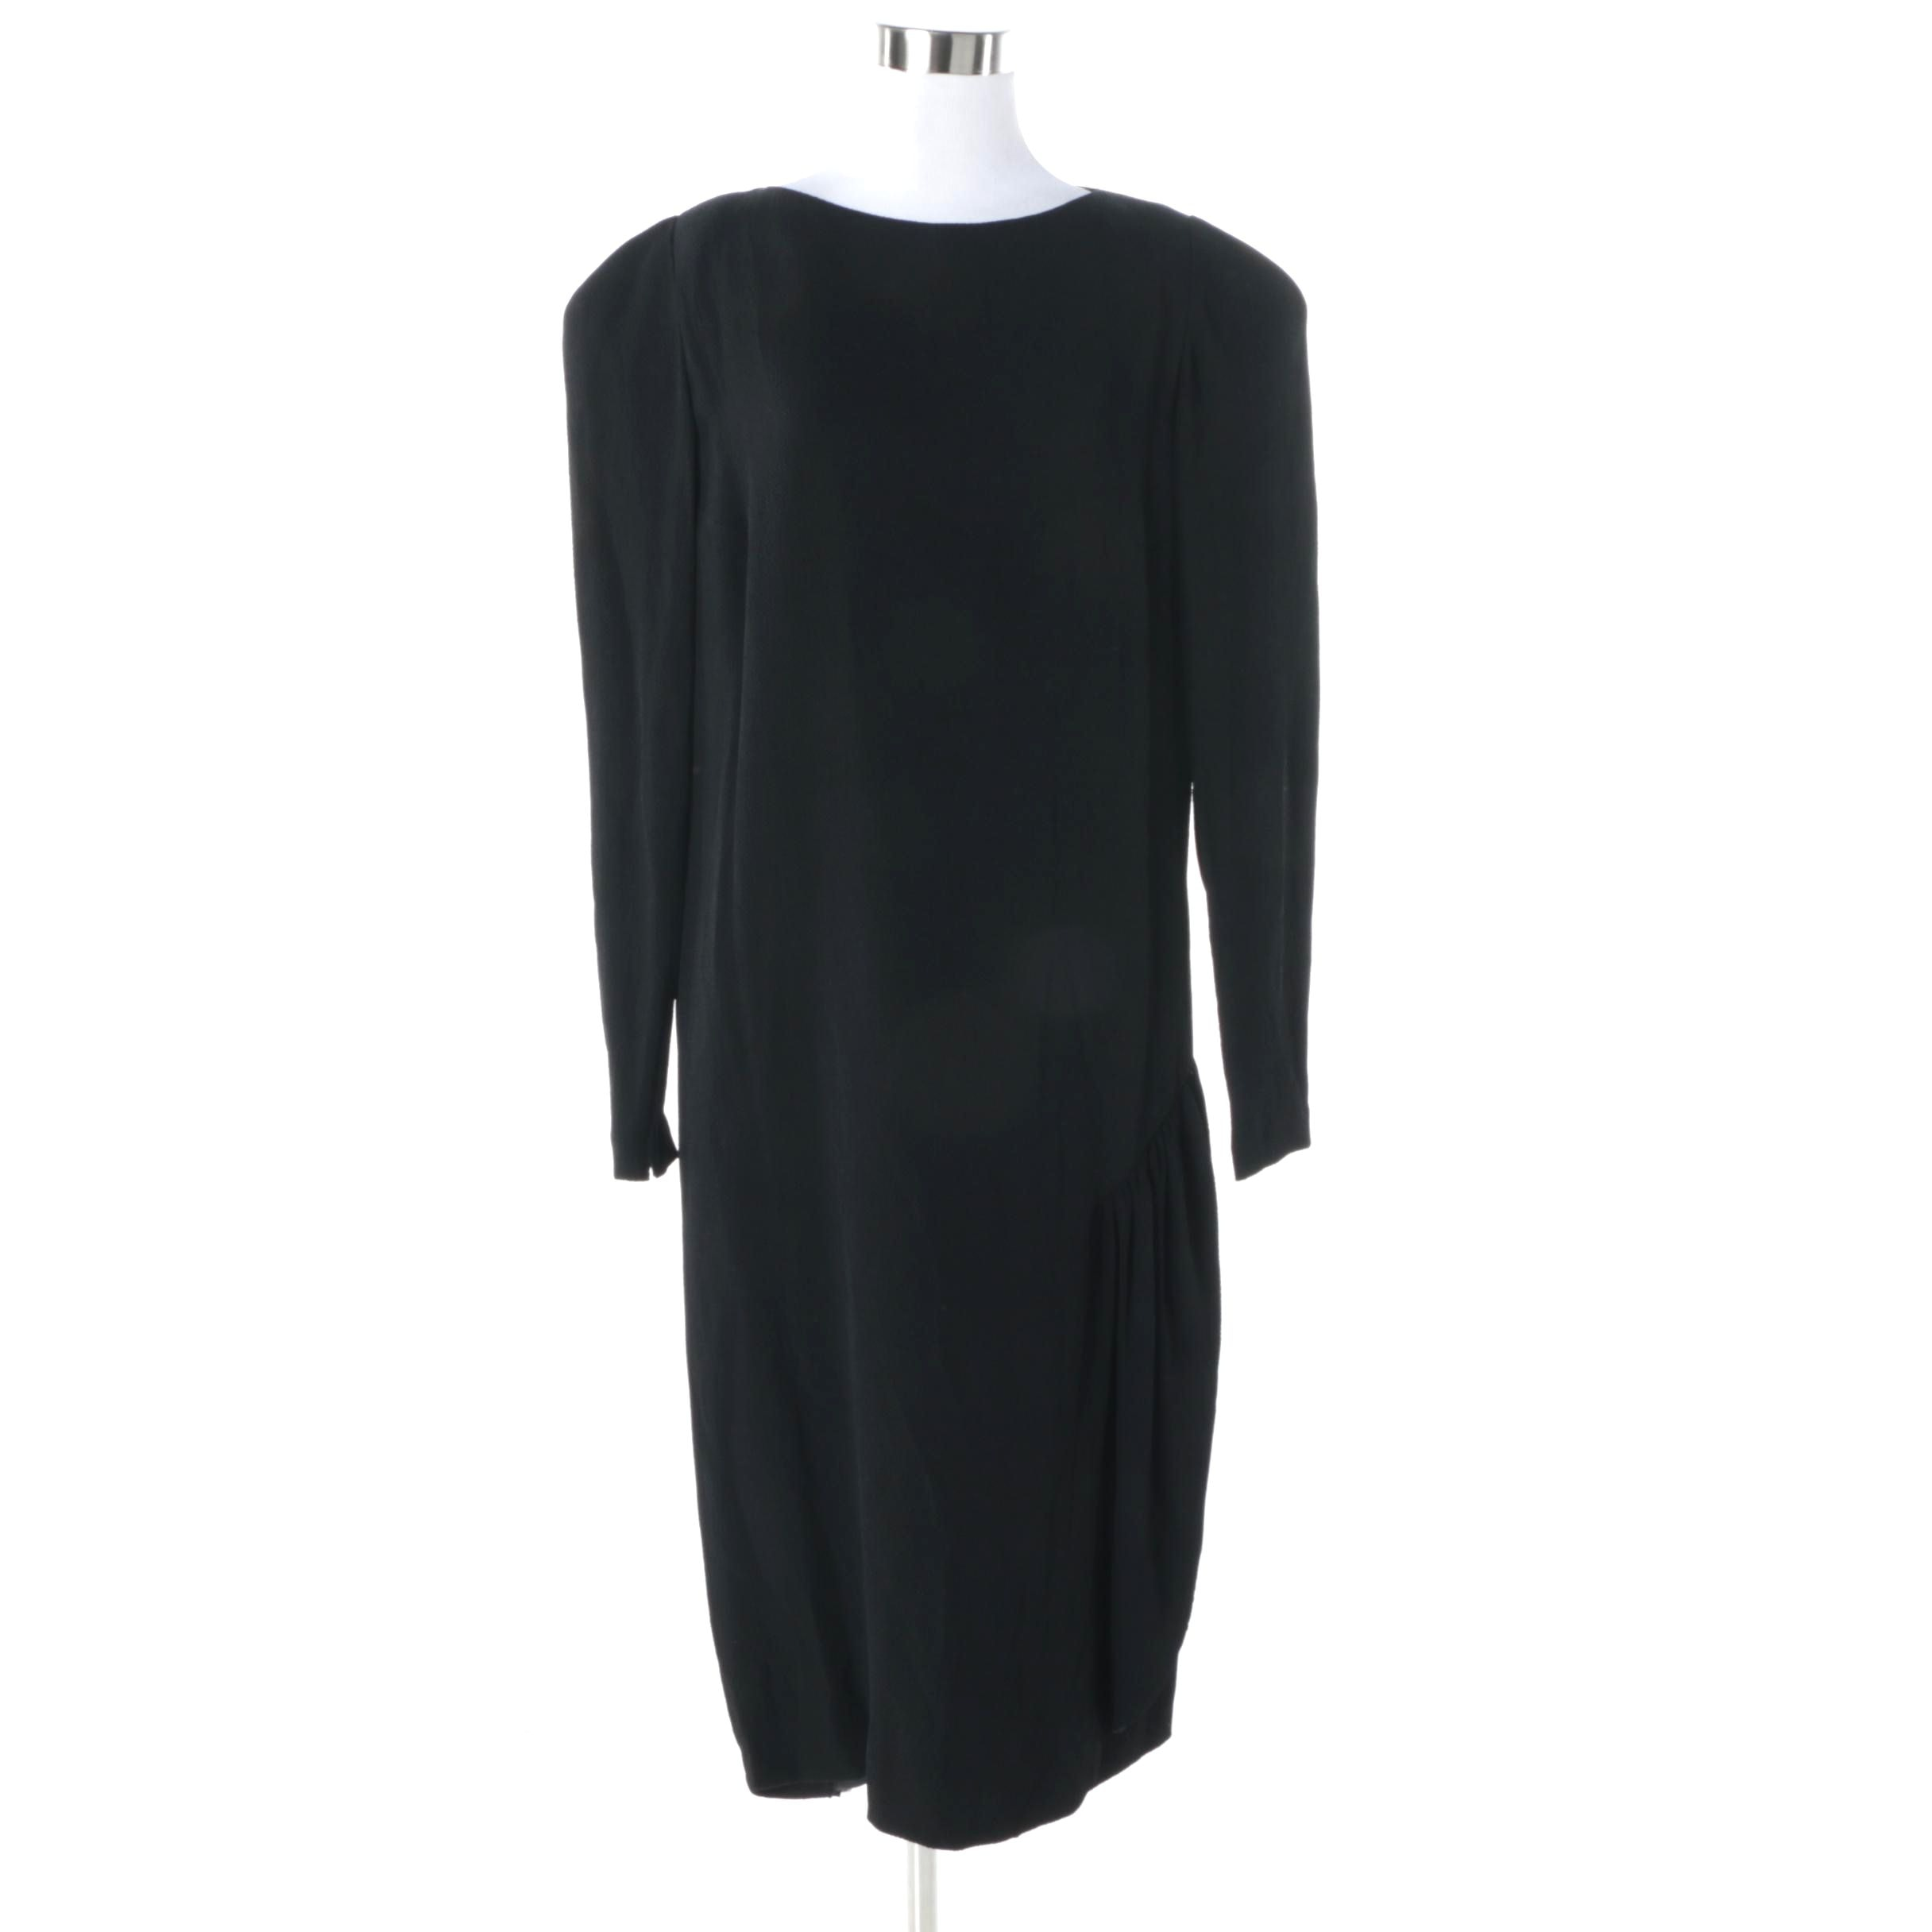 1980s Vintage Pauline Trigere Black Silk Dress